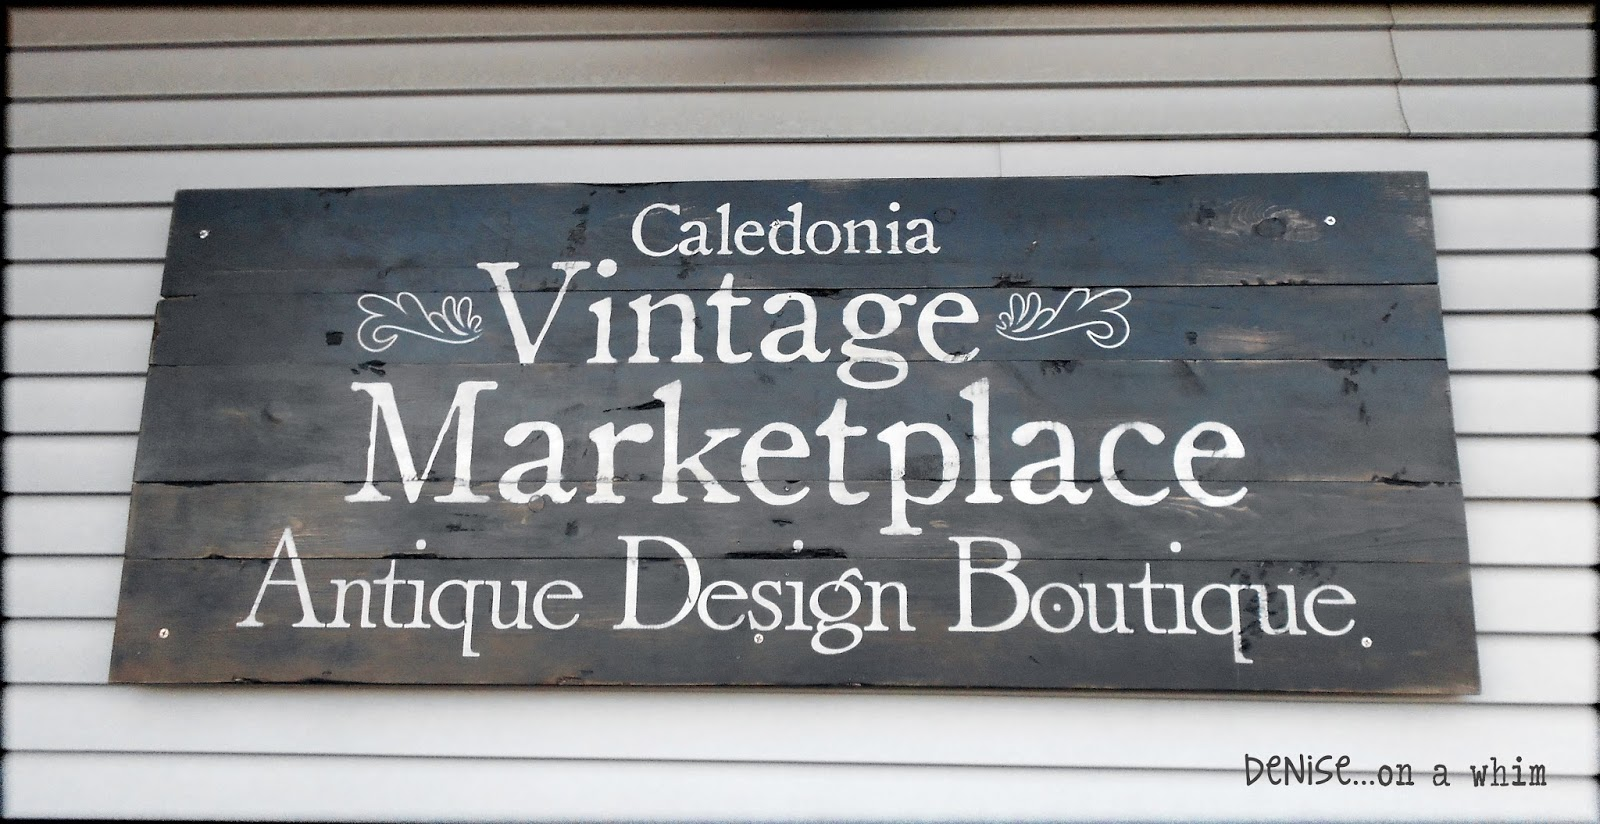 Painted Sign for Caledonia Vintage Marketplace via http://deniseonawhim.blogspot.com